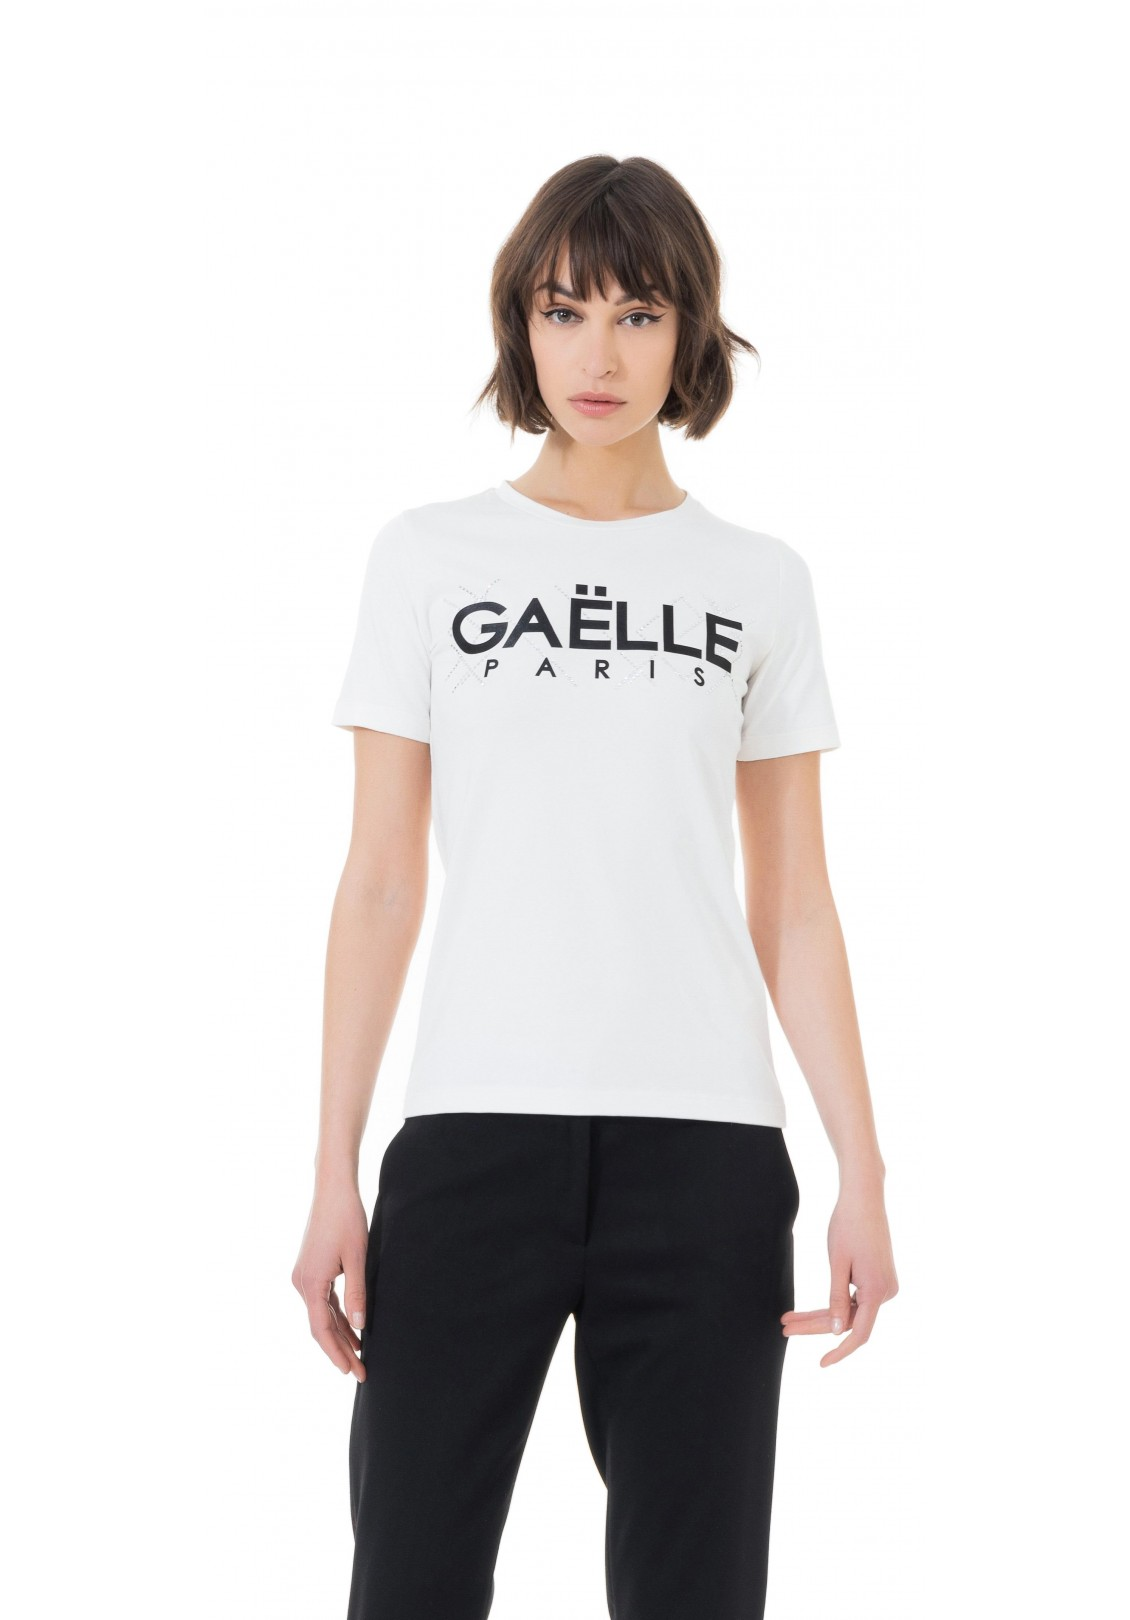 T-SHIRT - GBD4642 - GAELLE PARIS